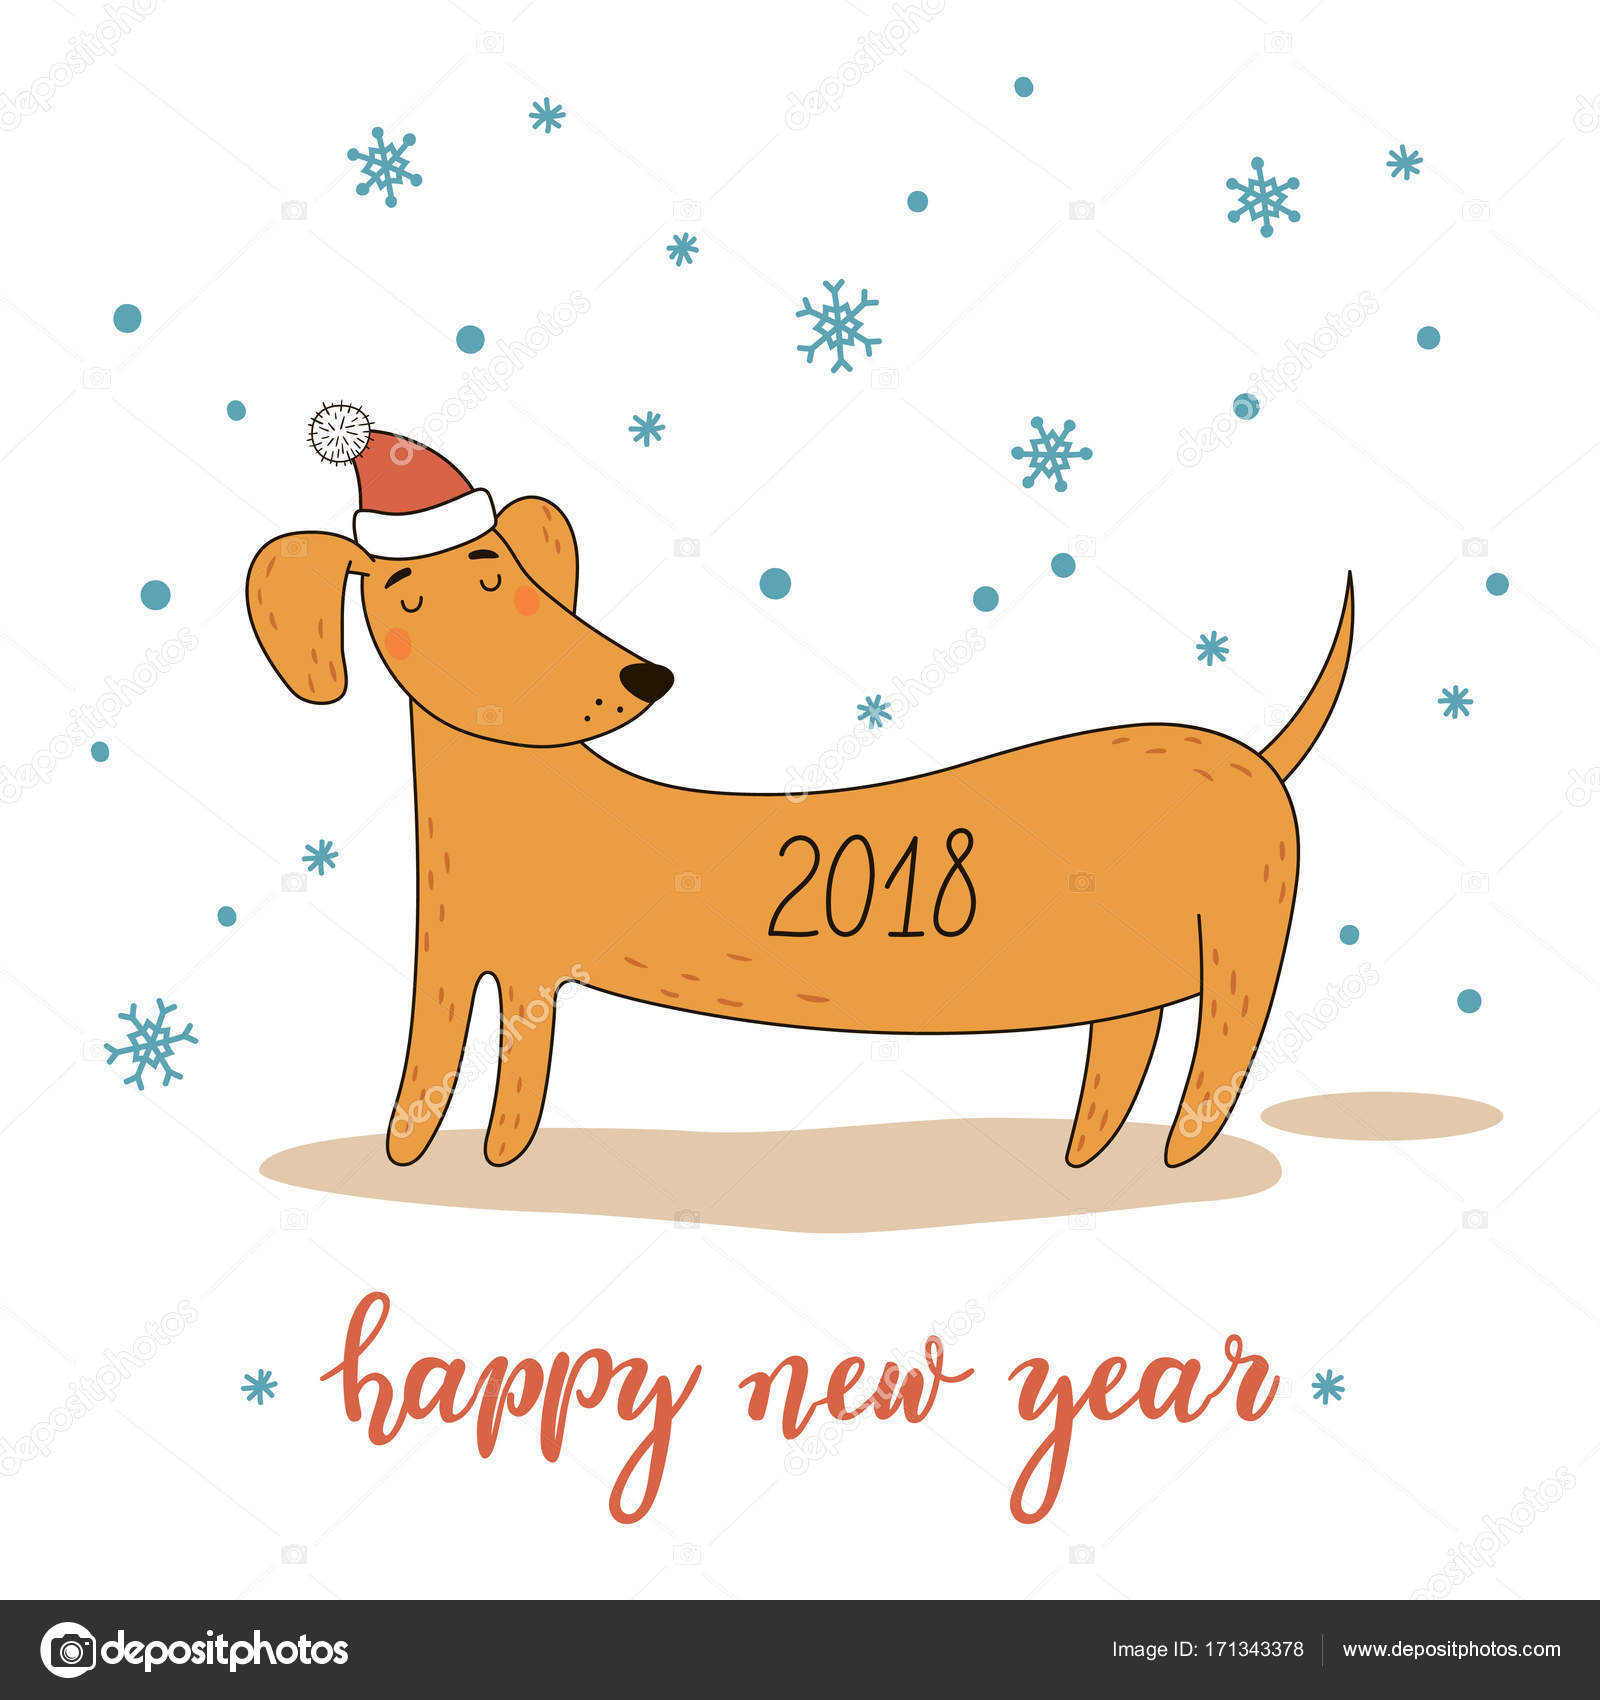 Christmas And New Year Greeting Card With Cute Cartoon Dachshund